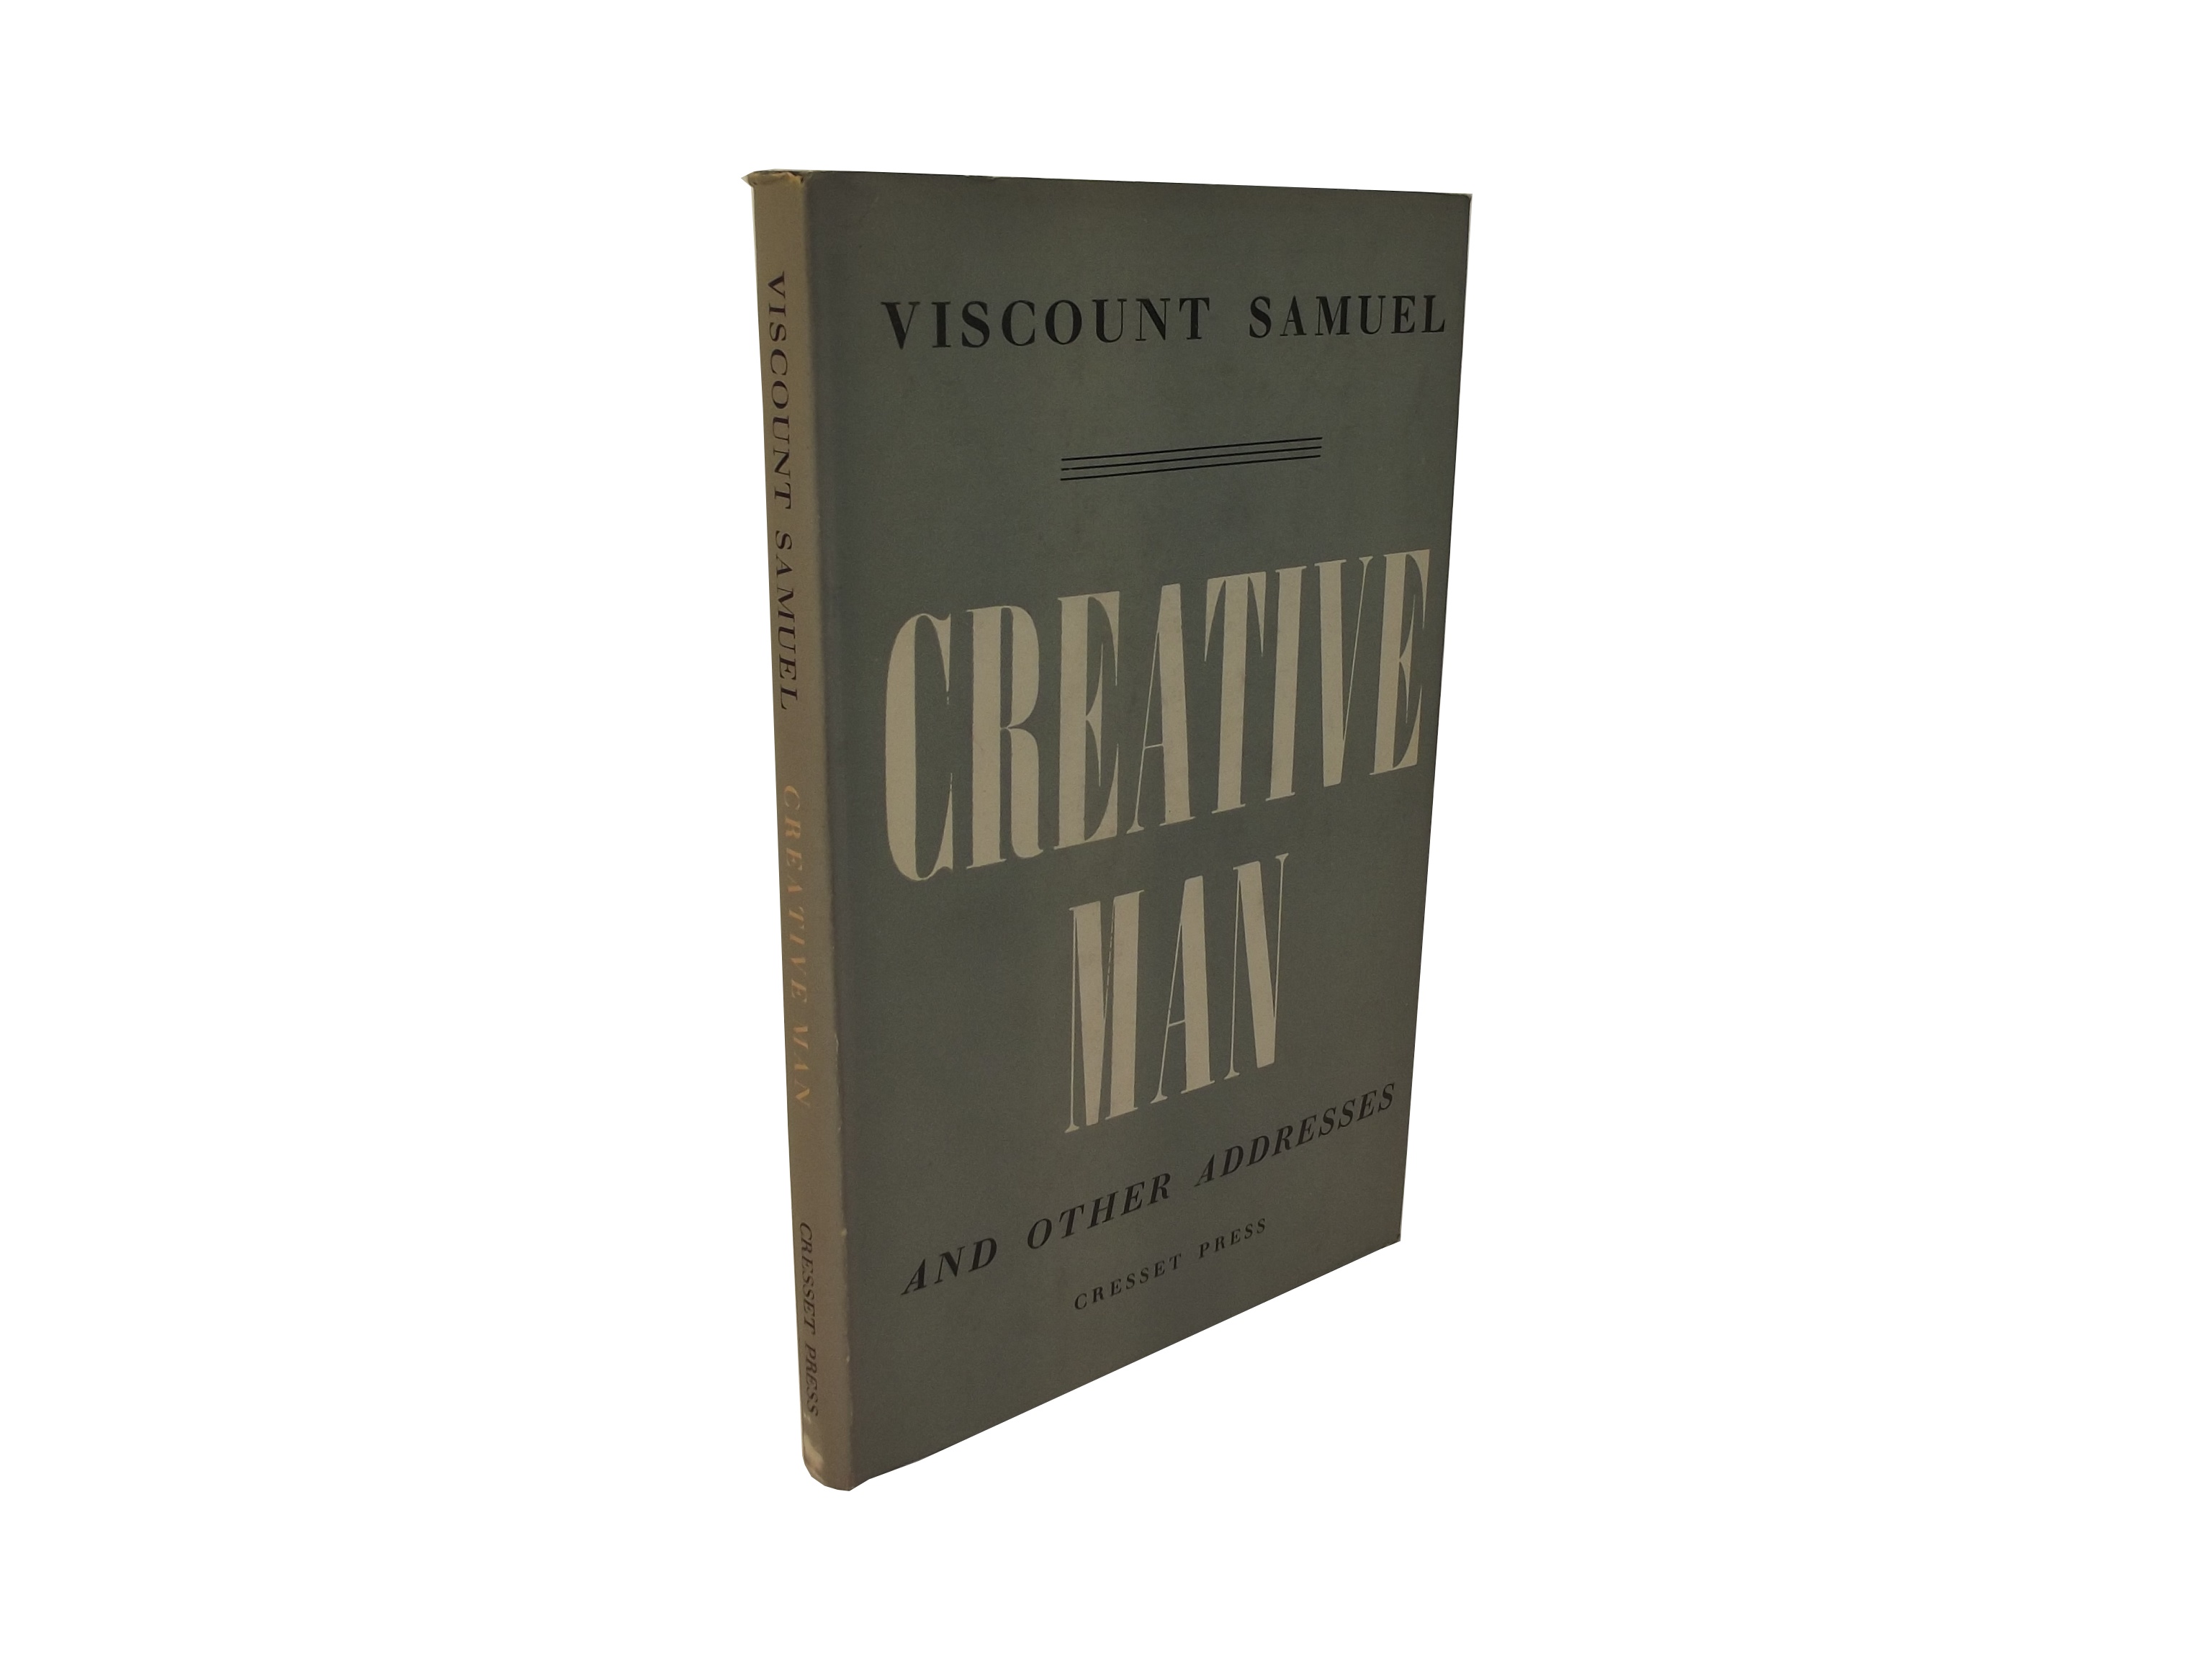 Creative Man and Other Essays